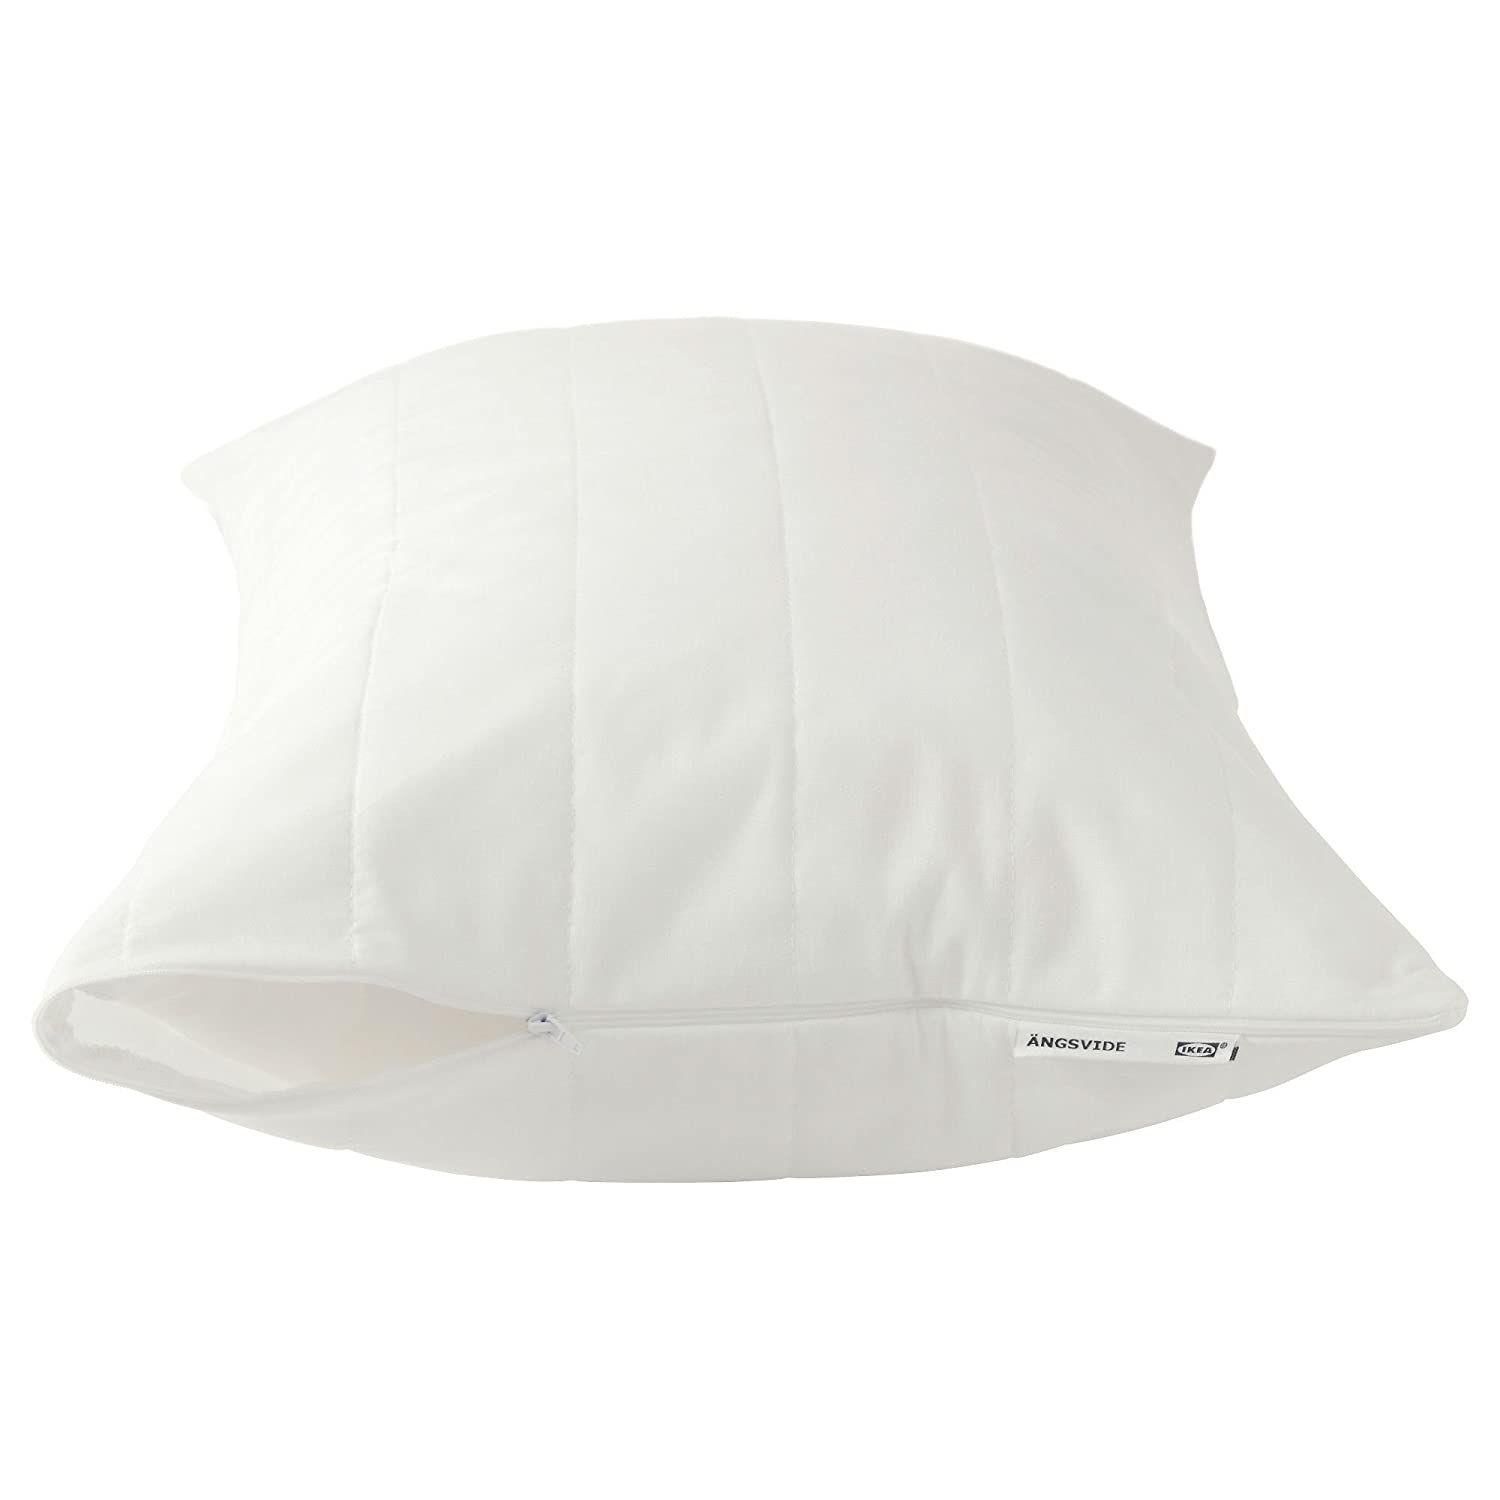 ANGSVIDE Pillow Protector Zip Up Polycotton Blend Pillow Case 20x32 Inches IKEA